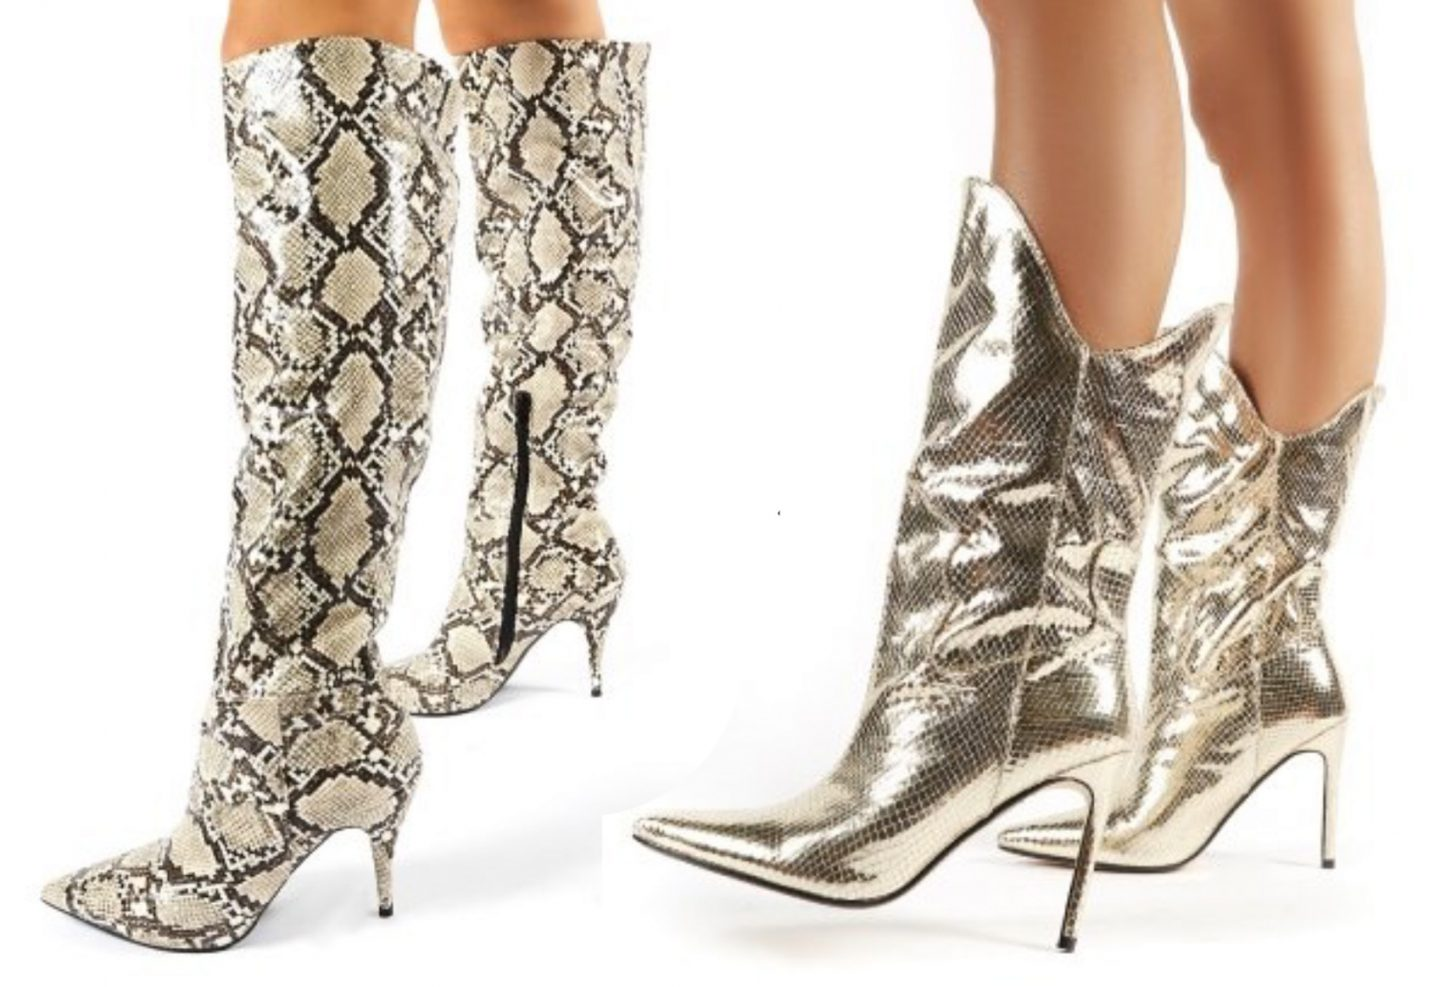 cyber monday | deals | christmas gifts | holiday shopping | Mash Elle | snakeskin boots